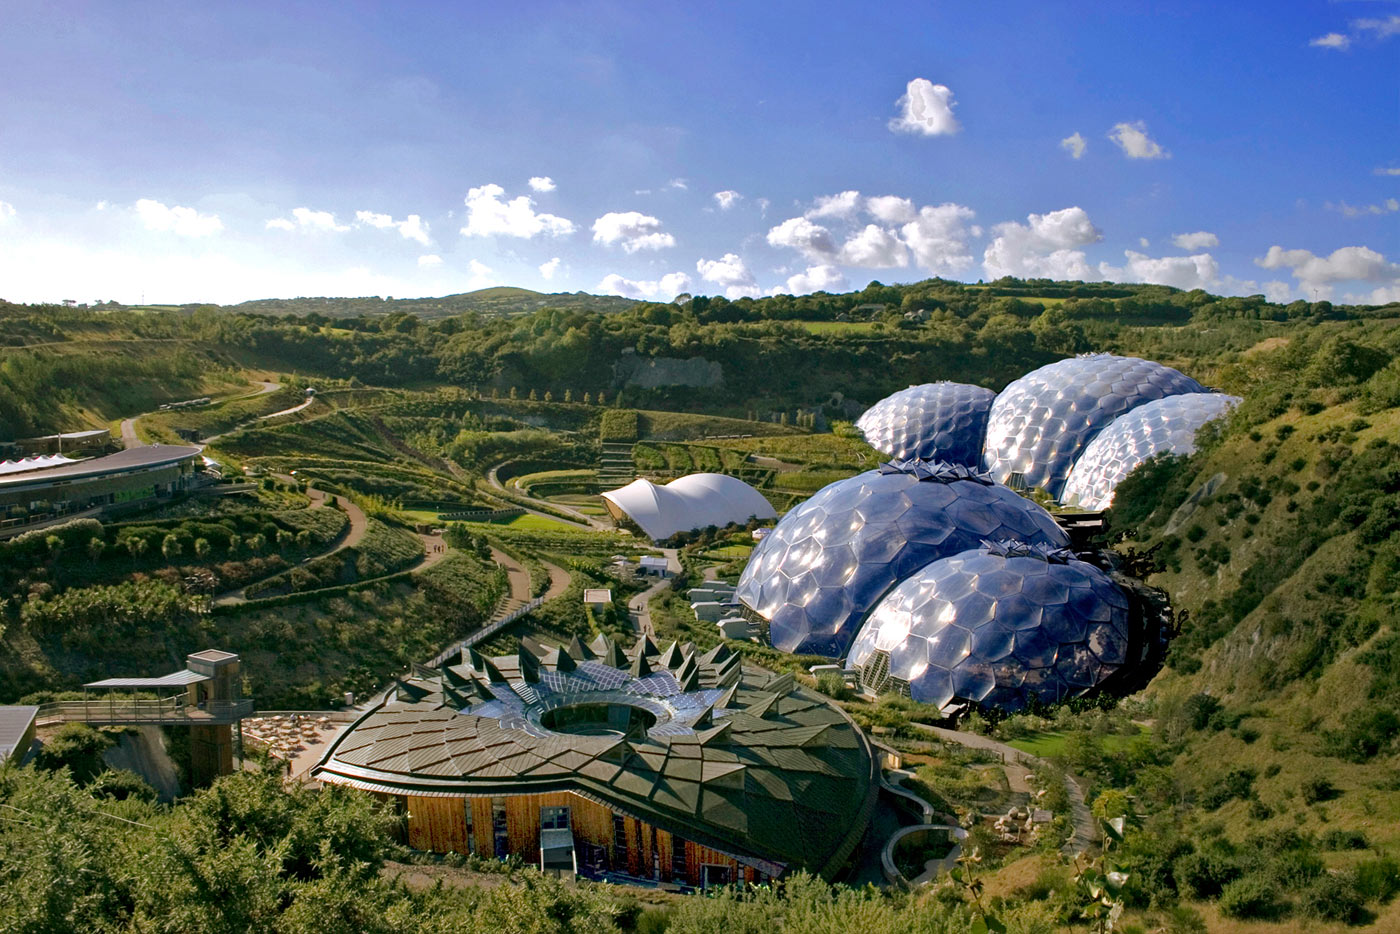 Eden project bond image